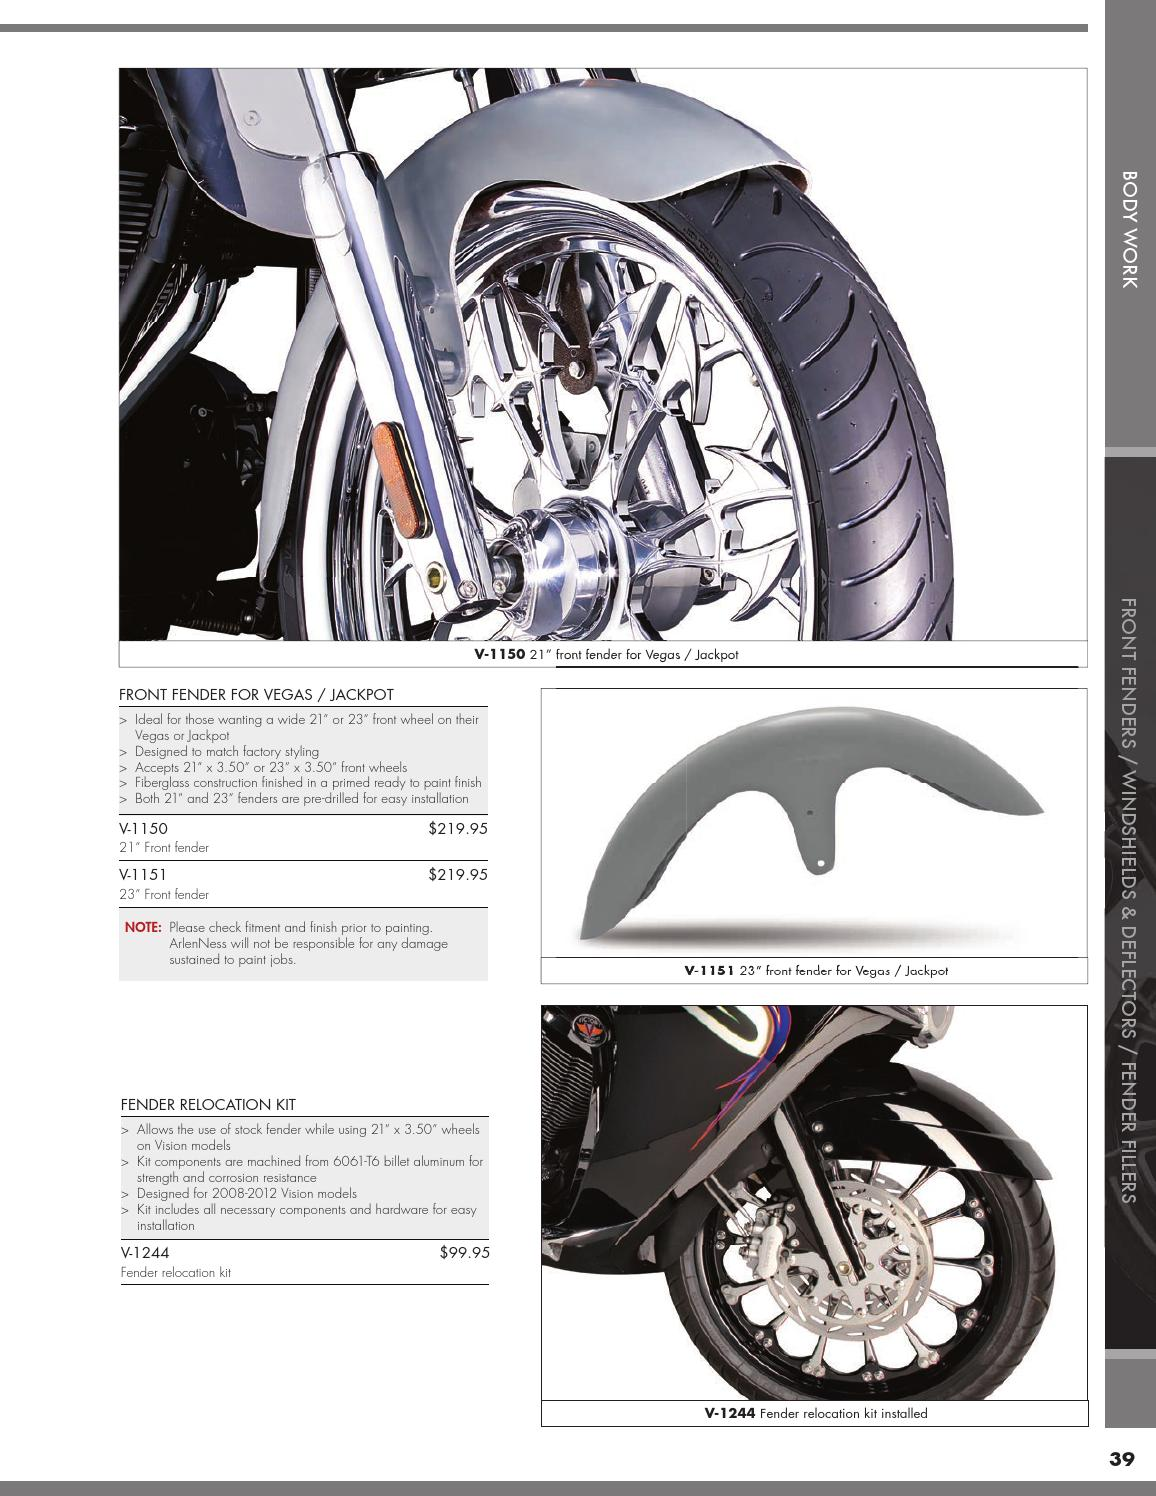 Arlen Ness 2015 Parts & Accessories For Victory